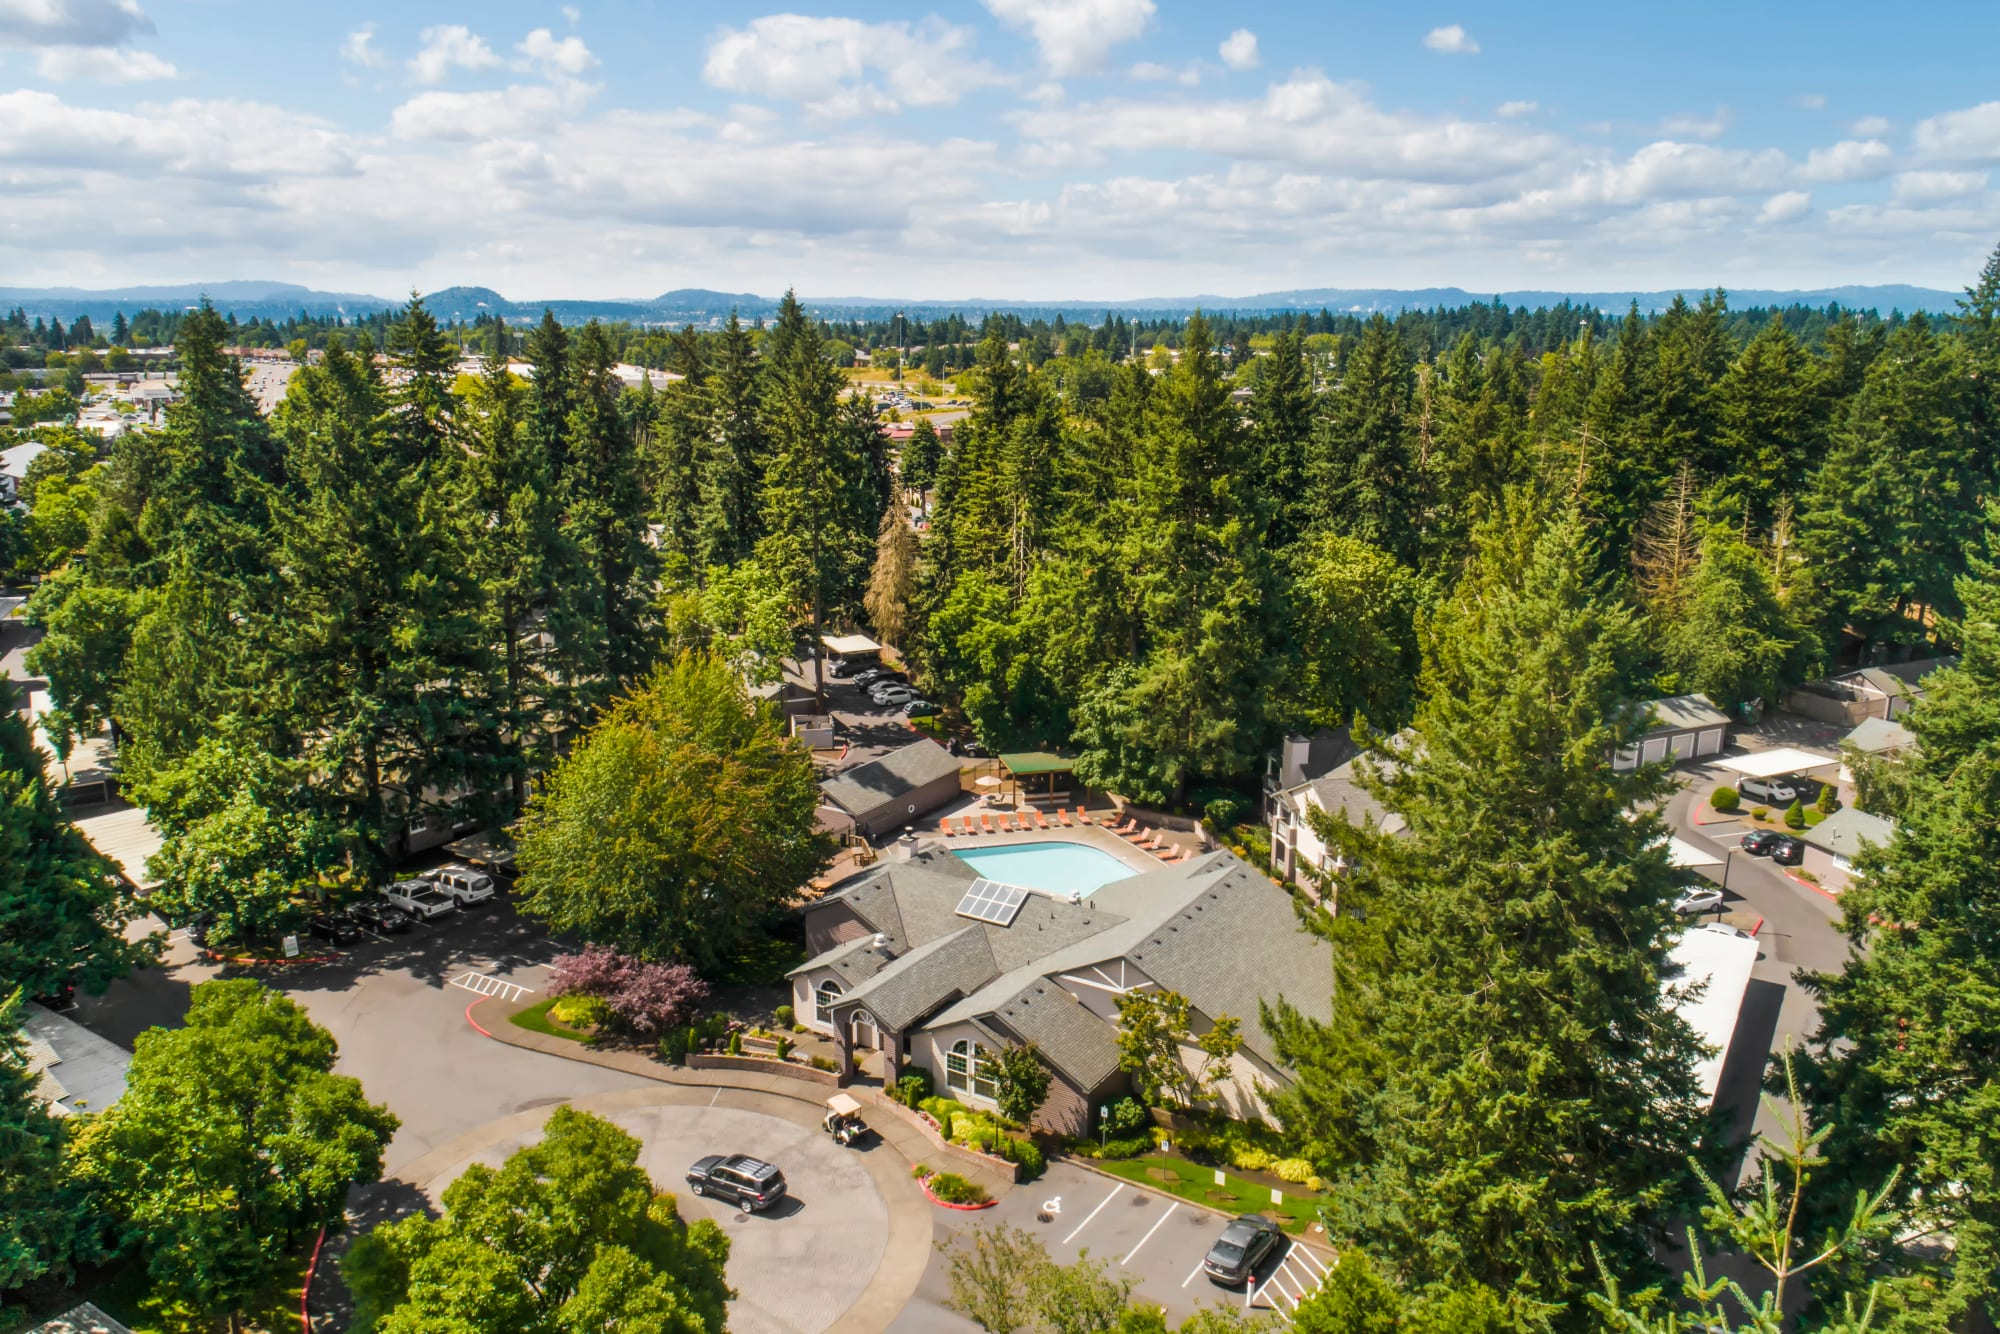 An aerial view of the property and surrounding area at Autumn Chase Apartments in Vancouver, Washington